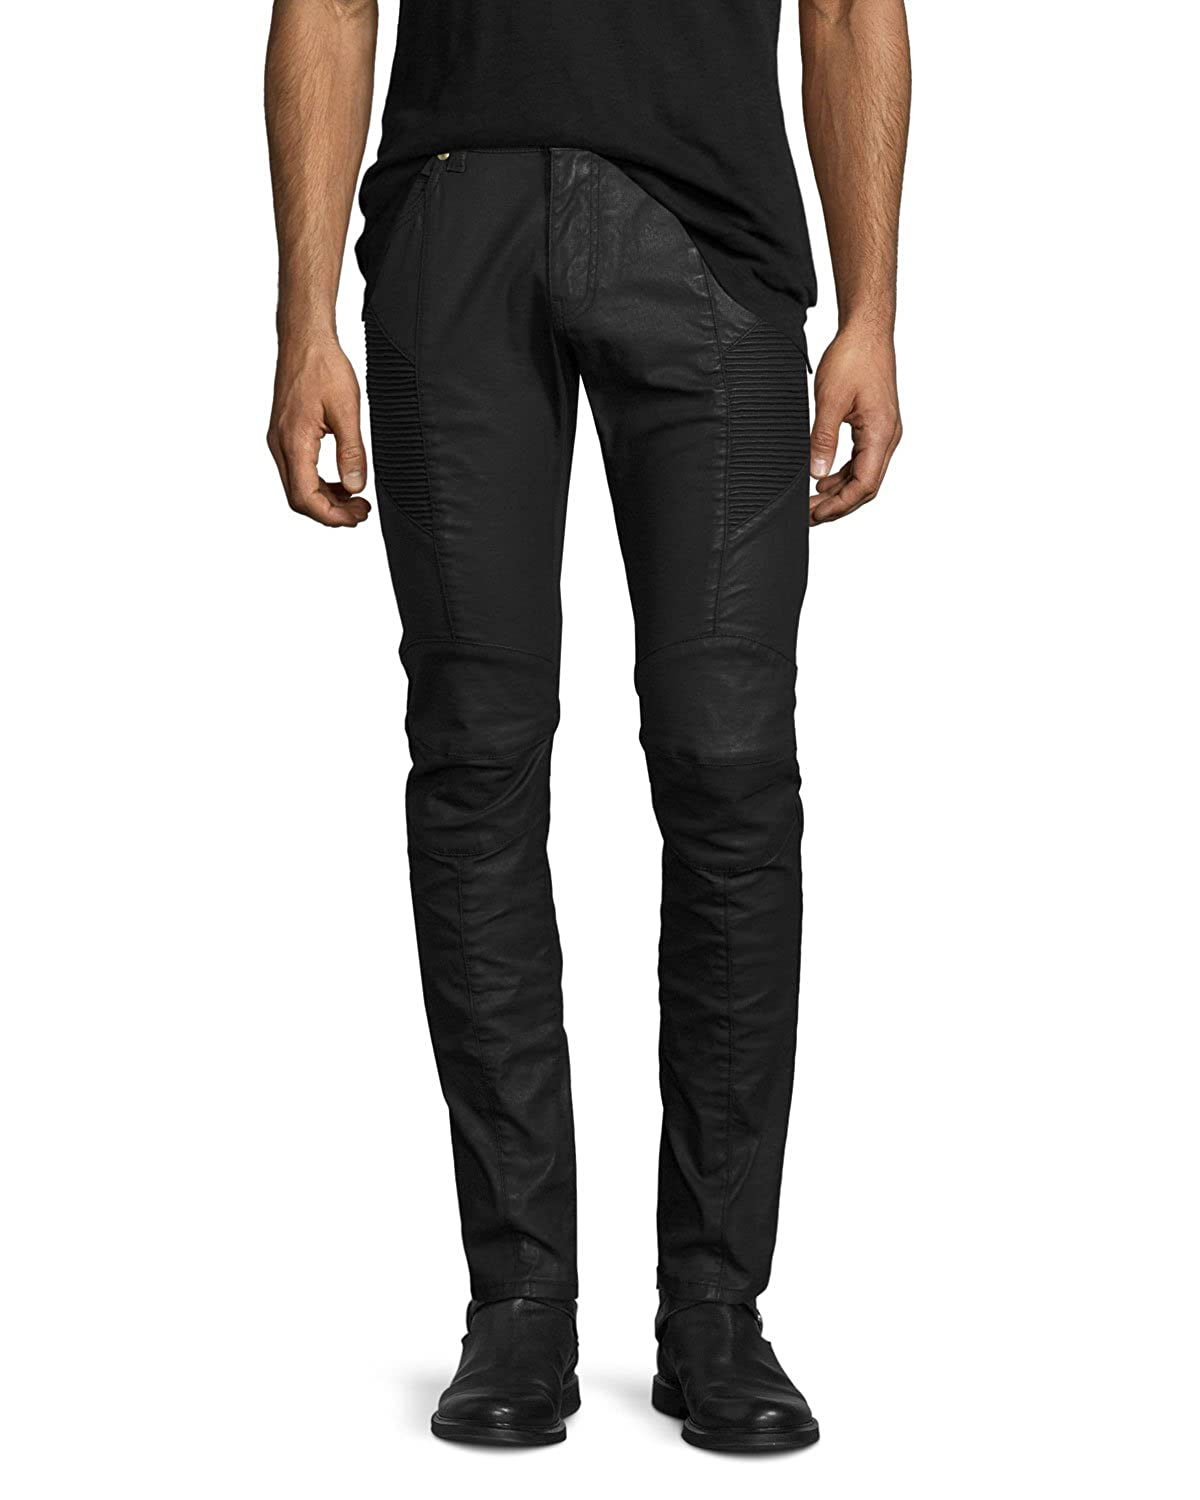 cda31afe Pierre Balmain Coated Biker Jeans with B Logo Pocket, Black ($775-Now $575)  at Amazon Men's Clothing store: